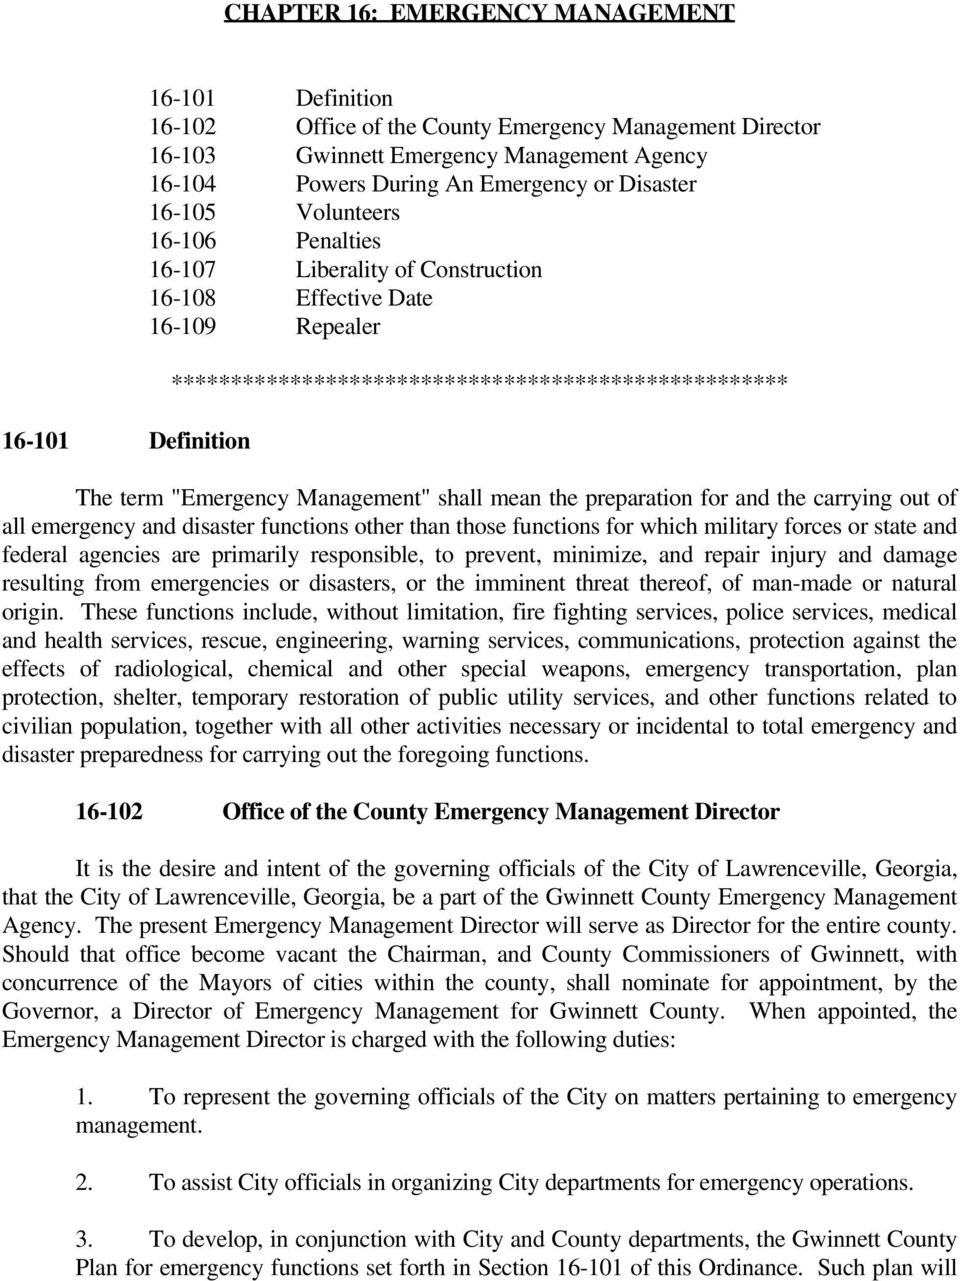 """Emergency Management"" shall mean the preparation for and the carrying out of all emergency and disaster functions other than those functions for which military forces or state and federal agencies"